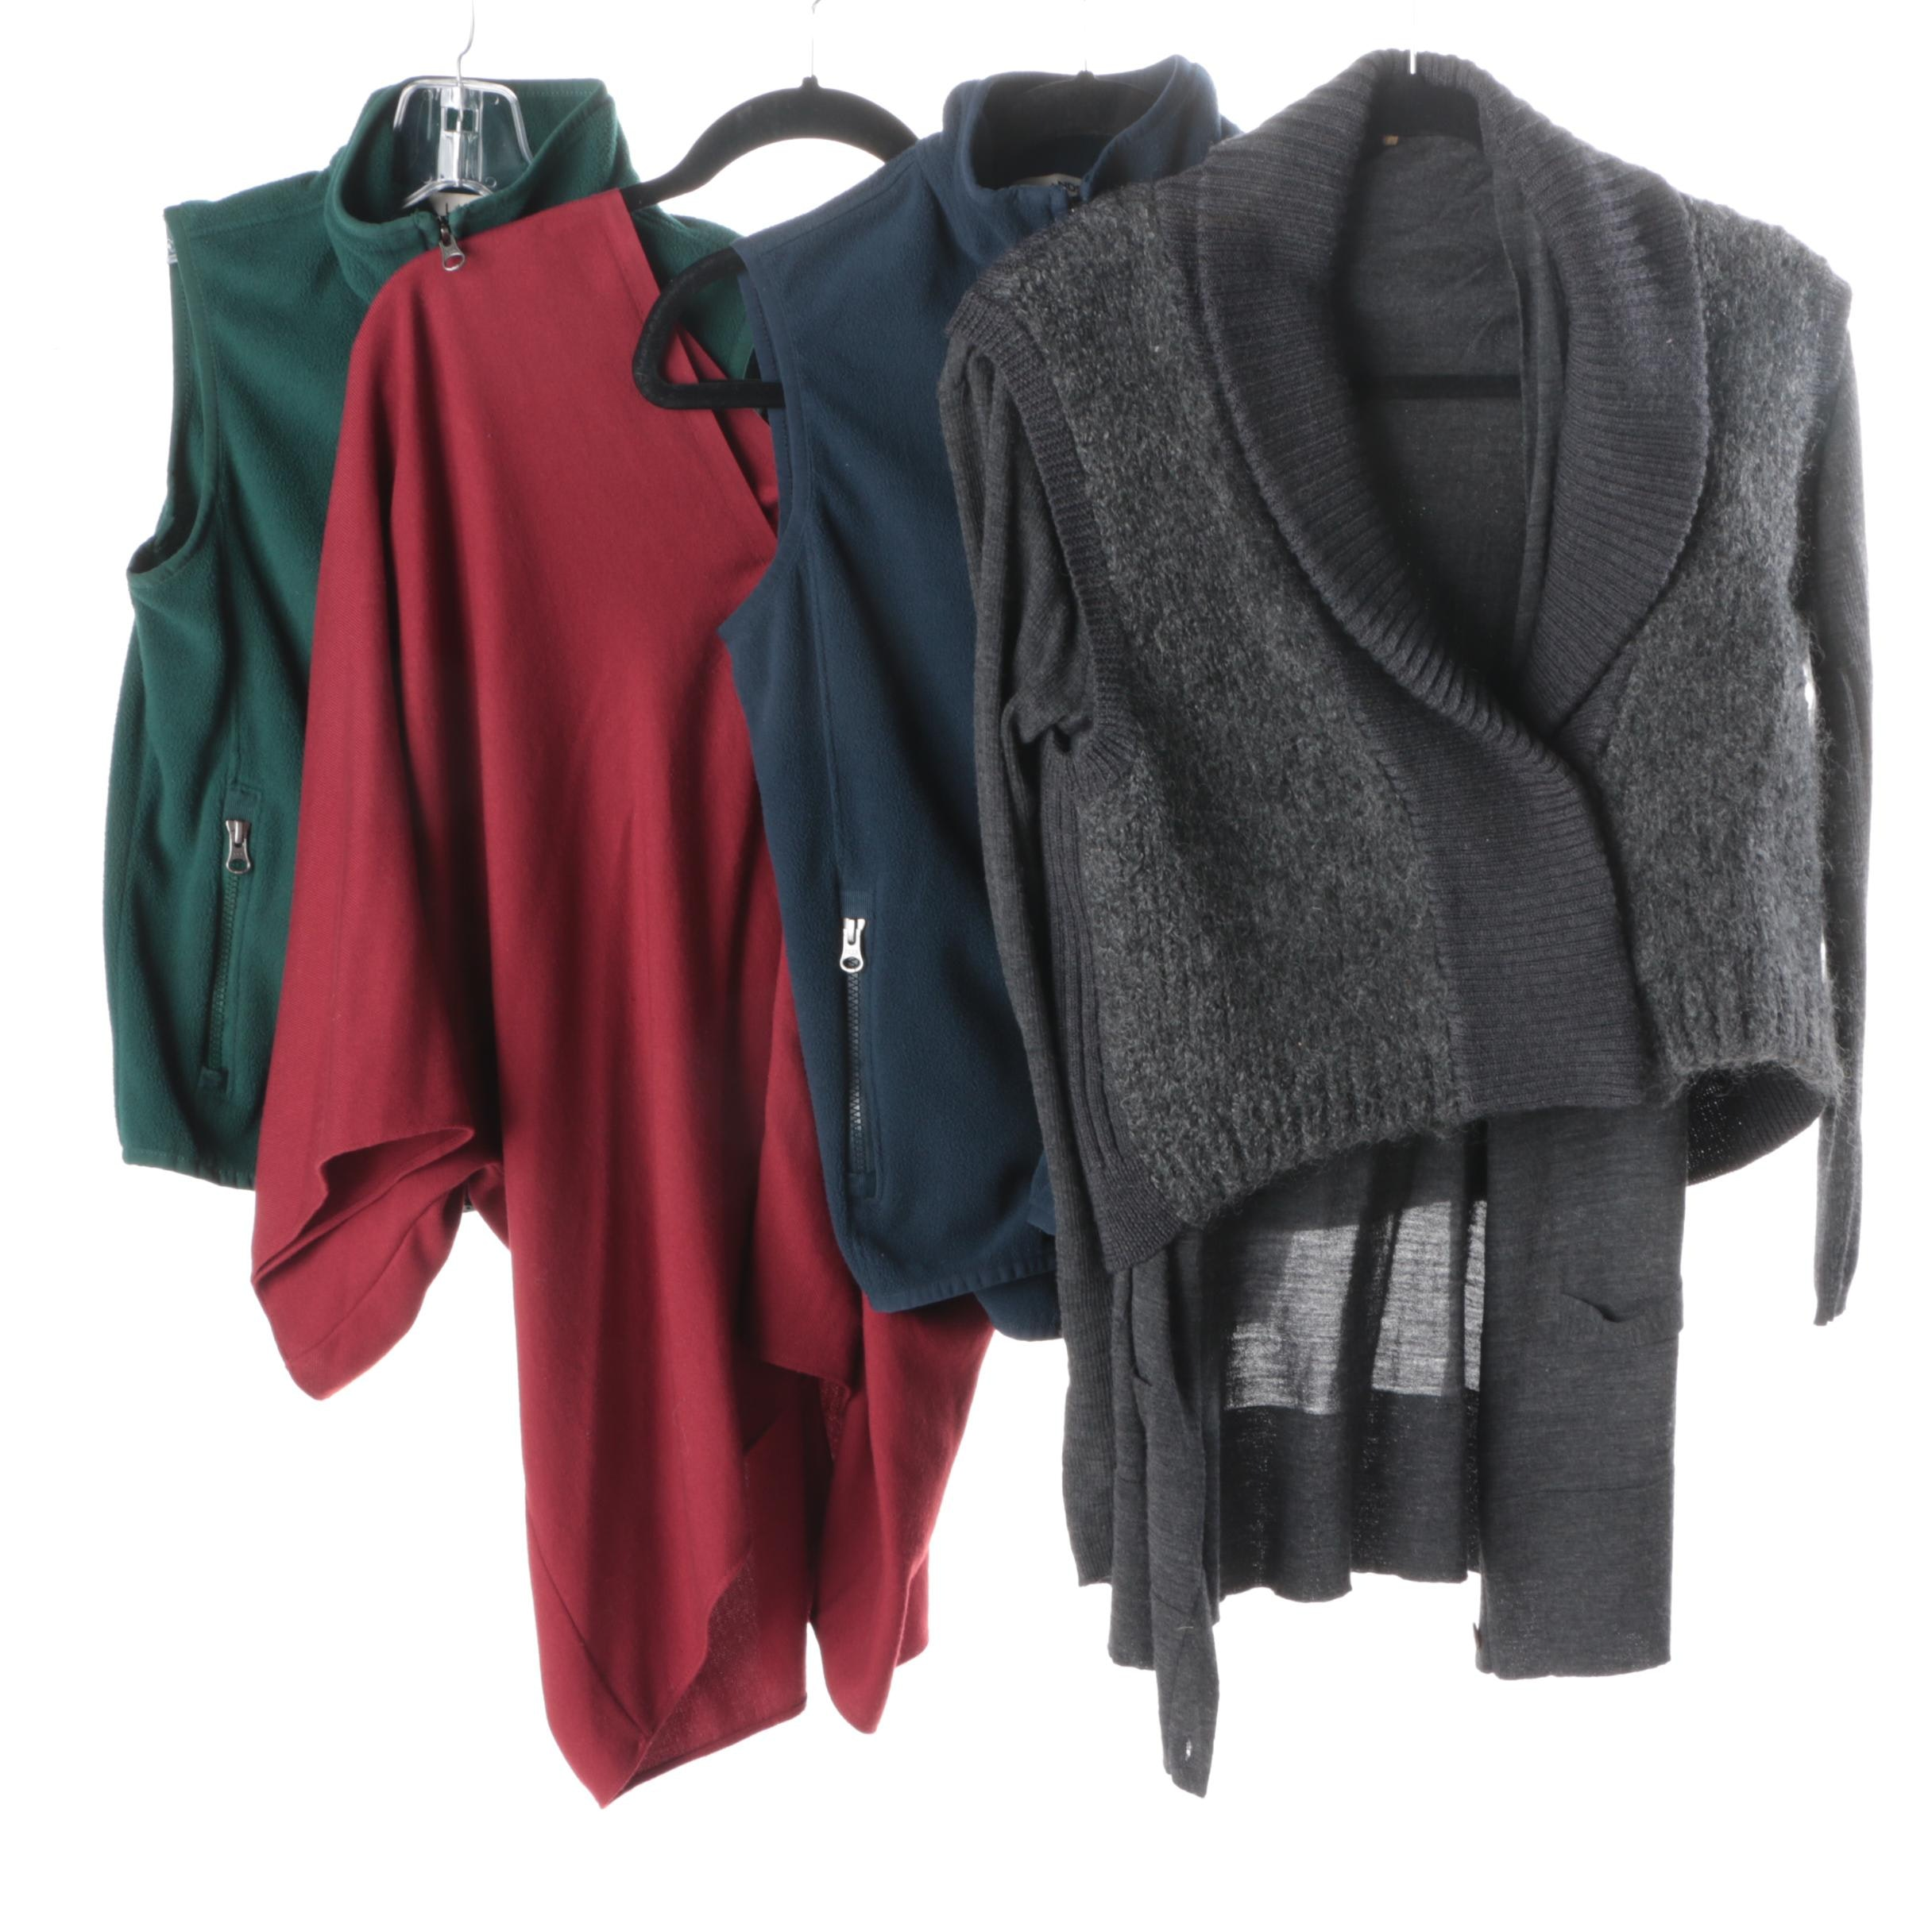 Women's Knits and Children's Lands' End Outerwear